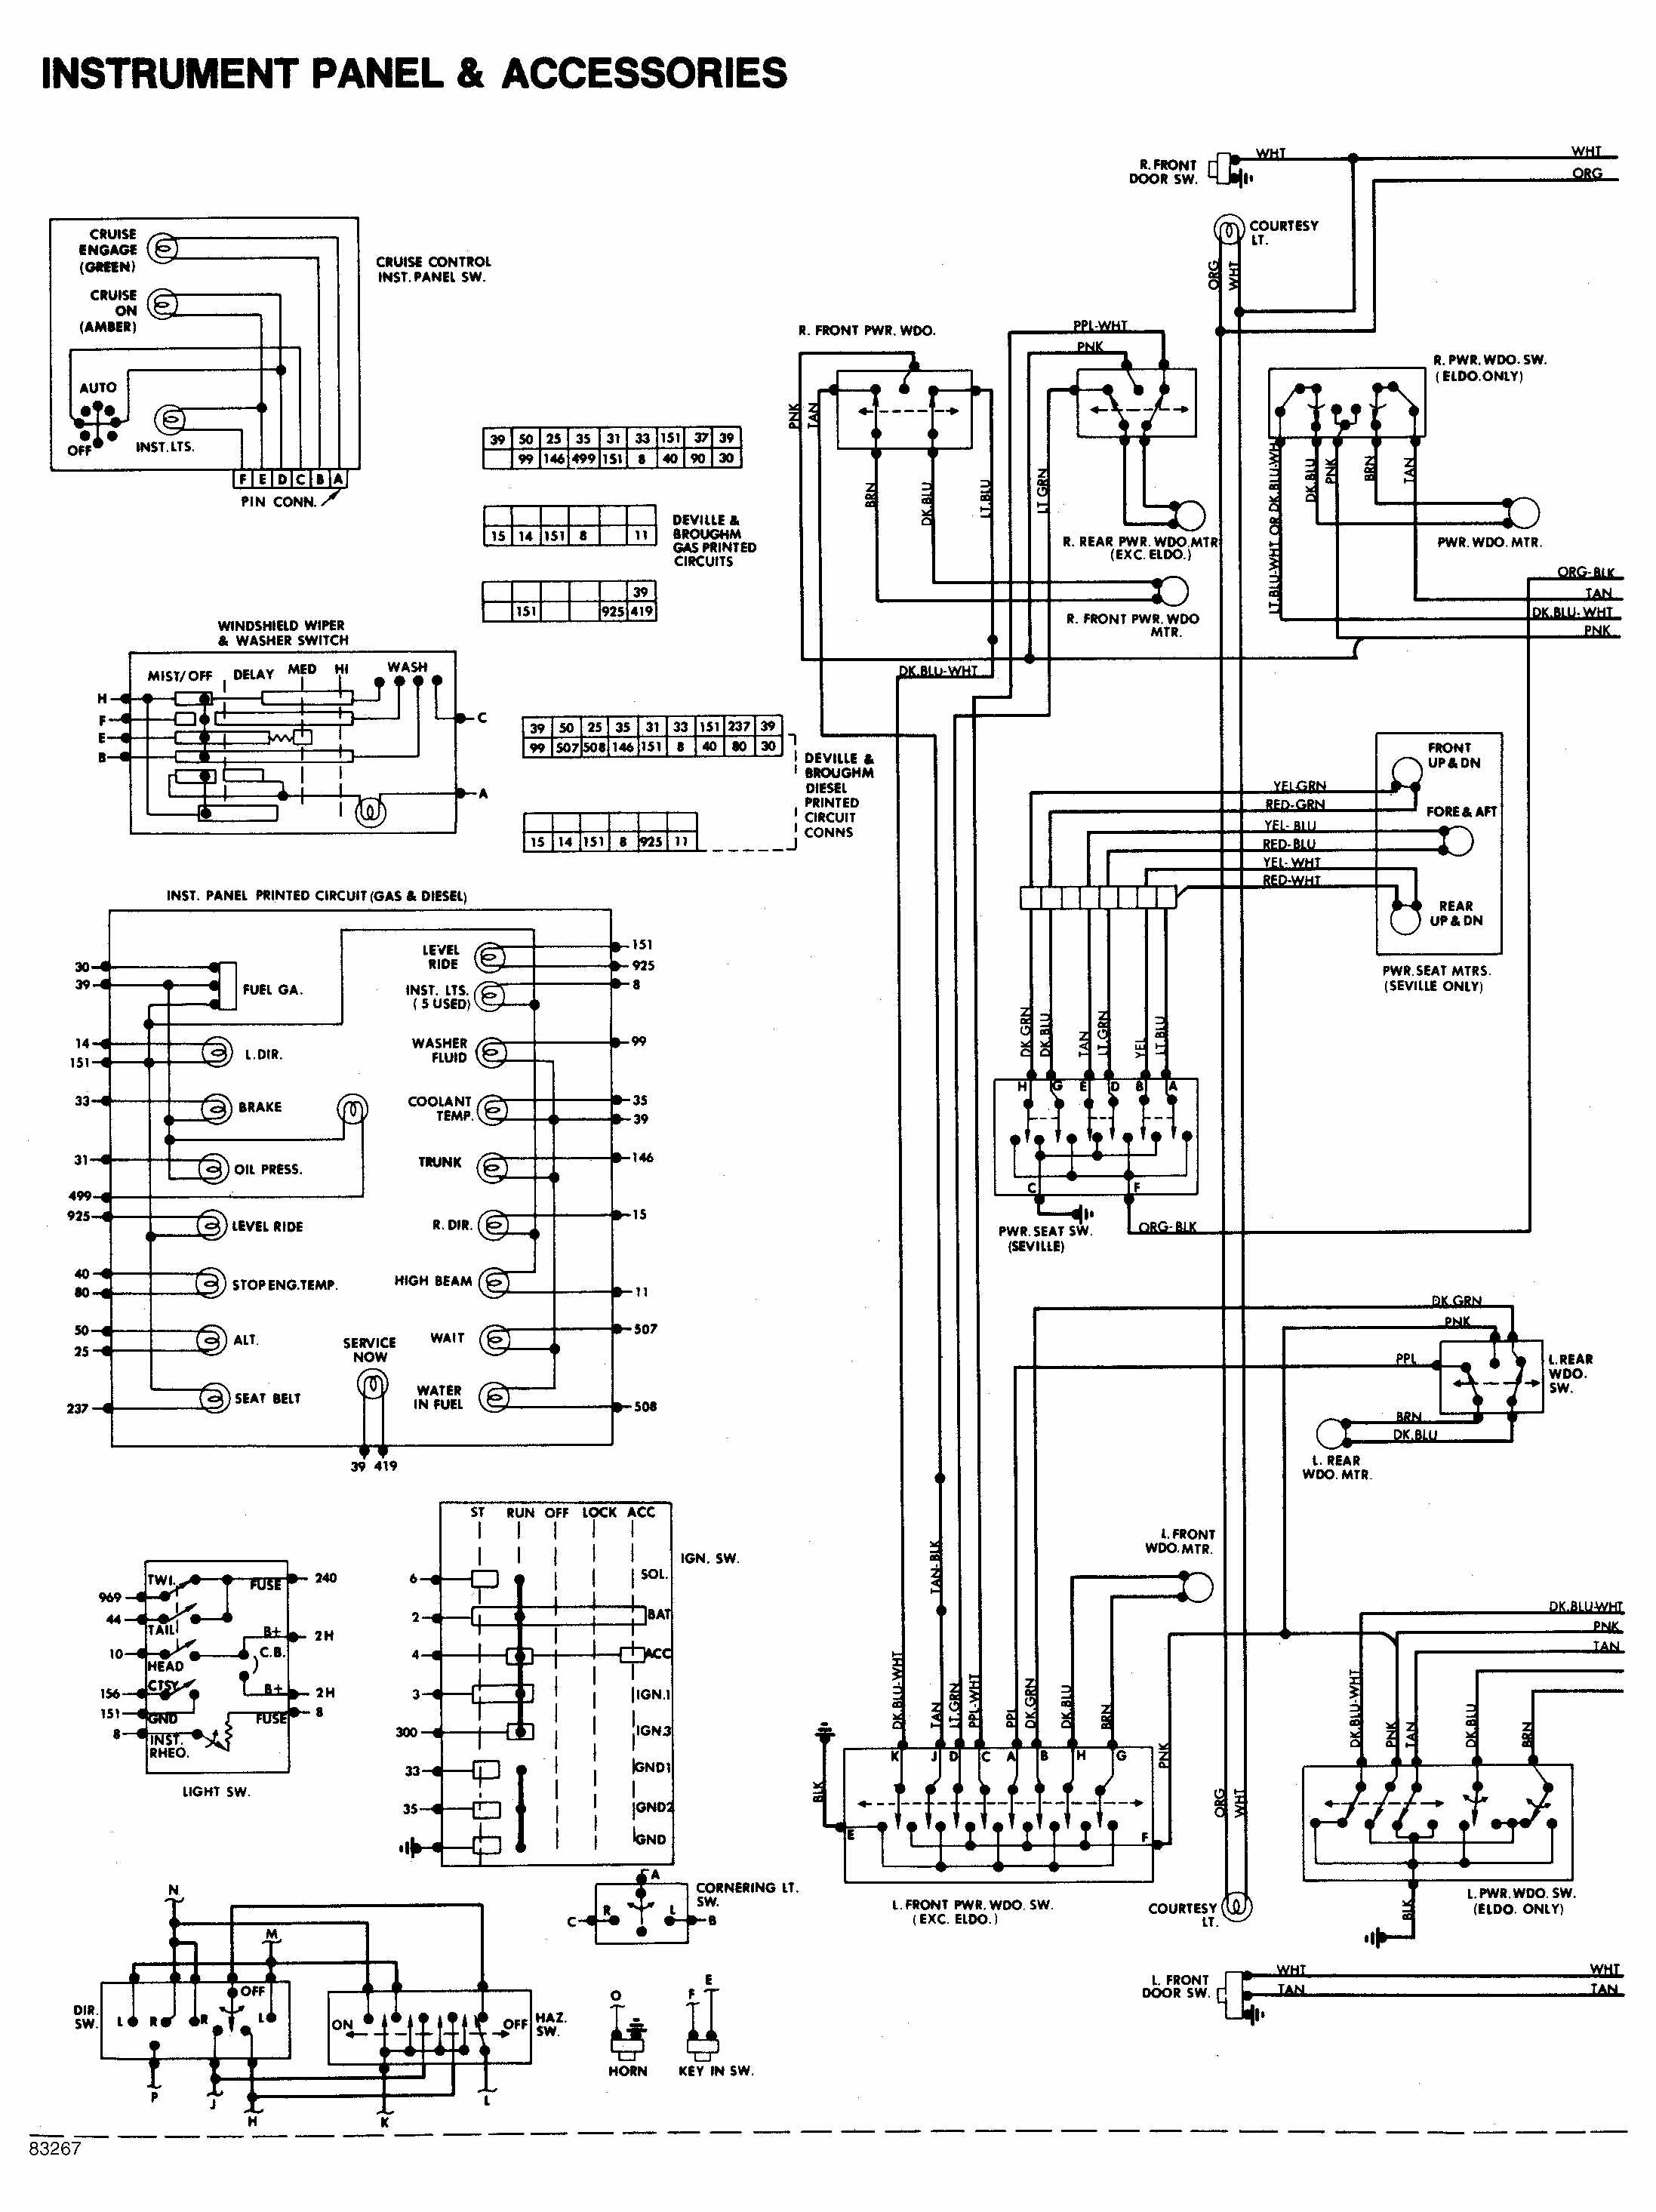 Here we have Chevrolet Wiring Diagrams and related pages.